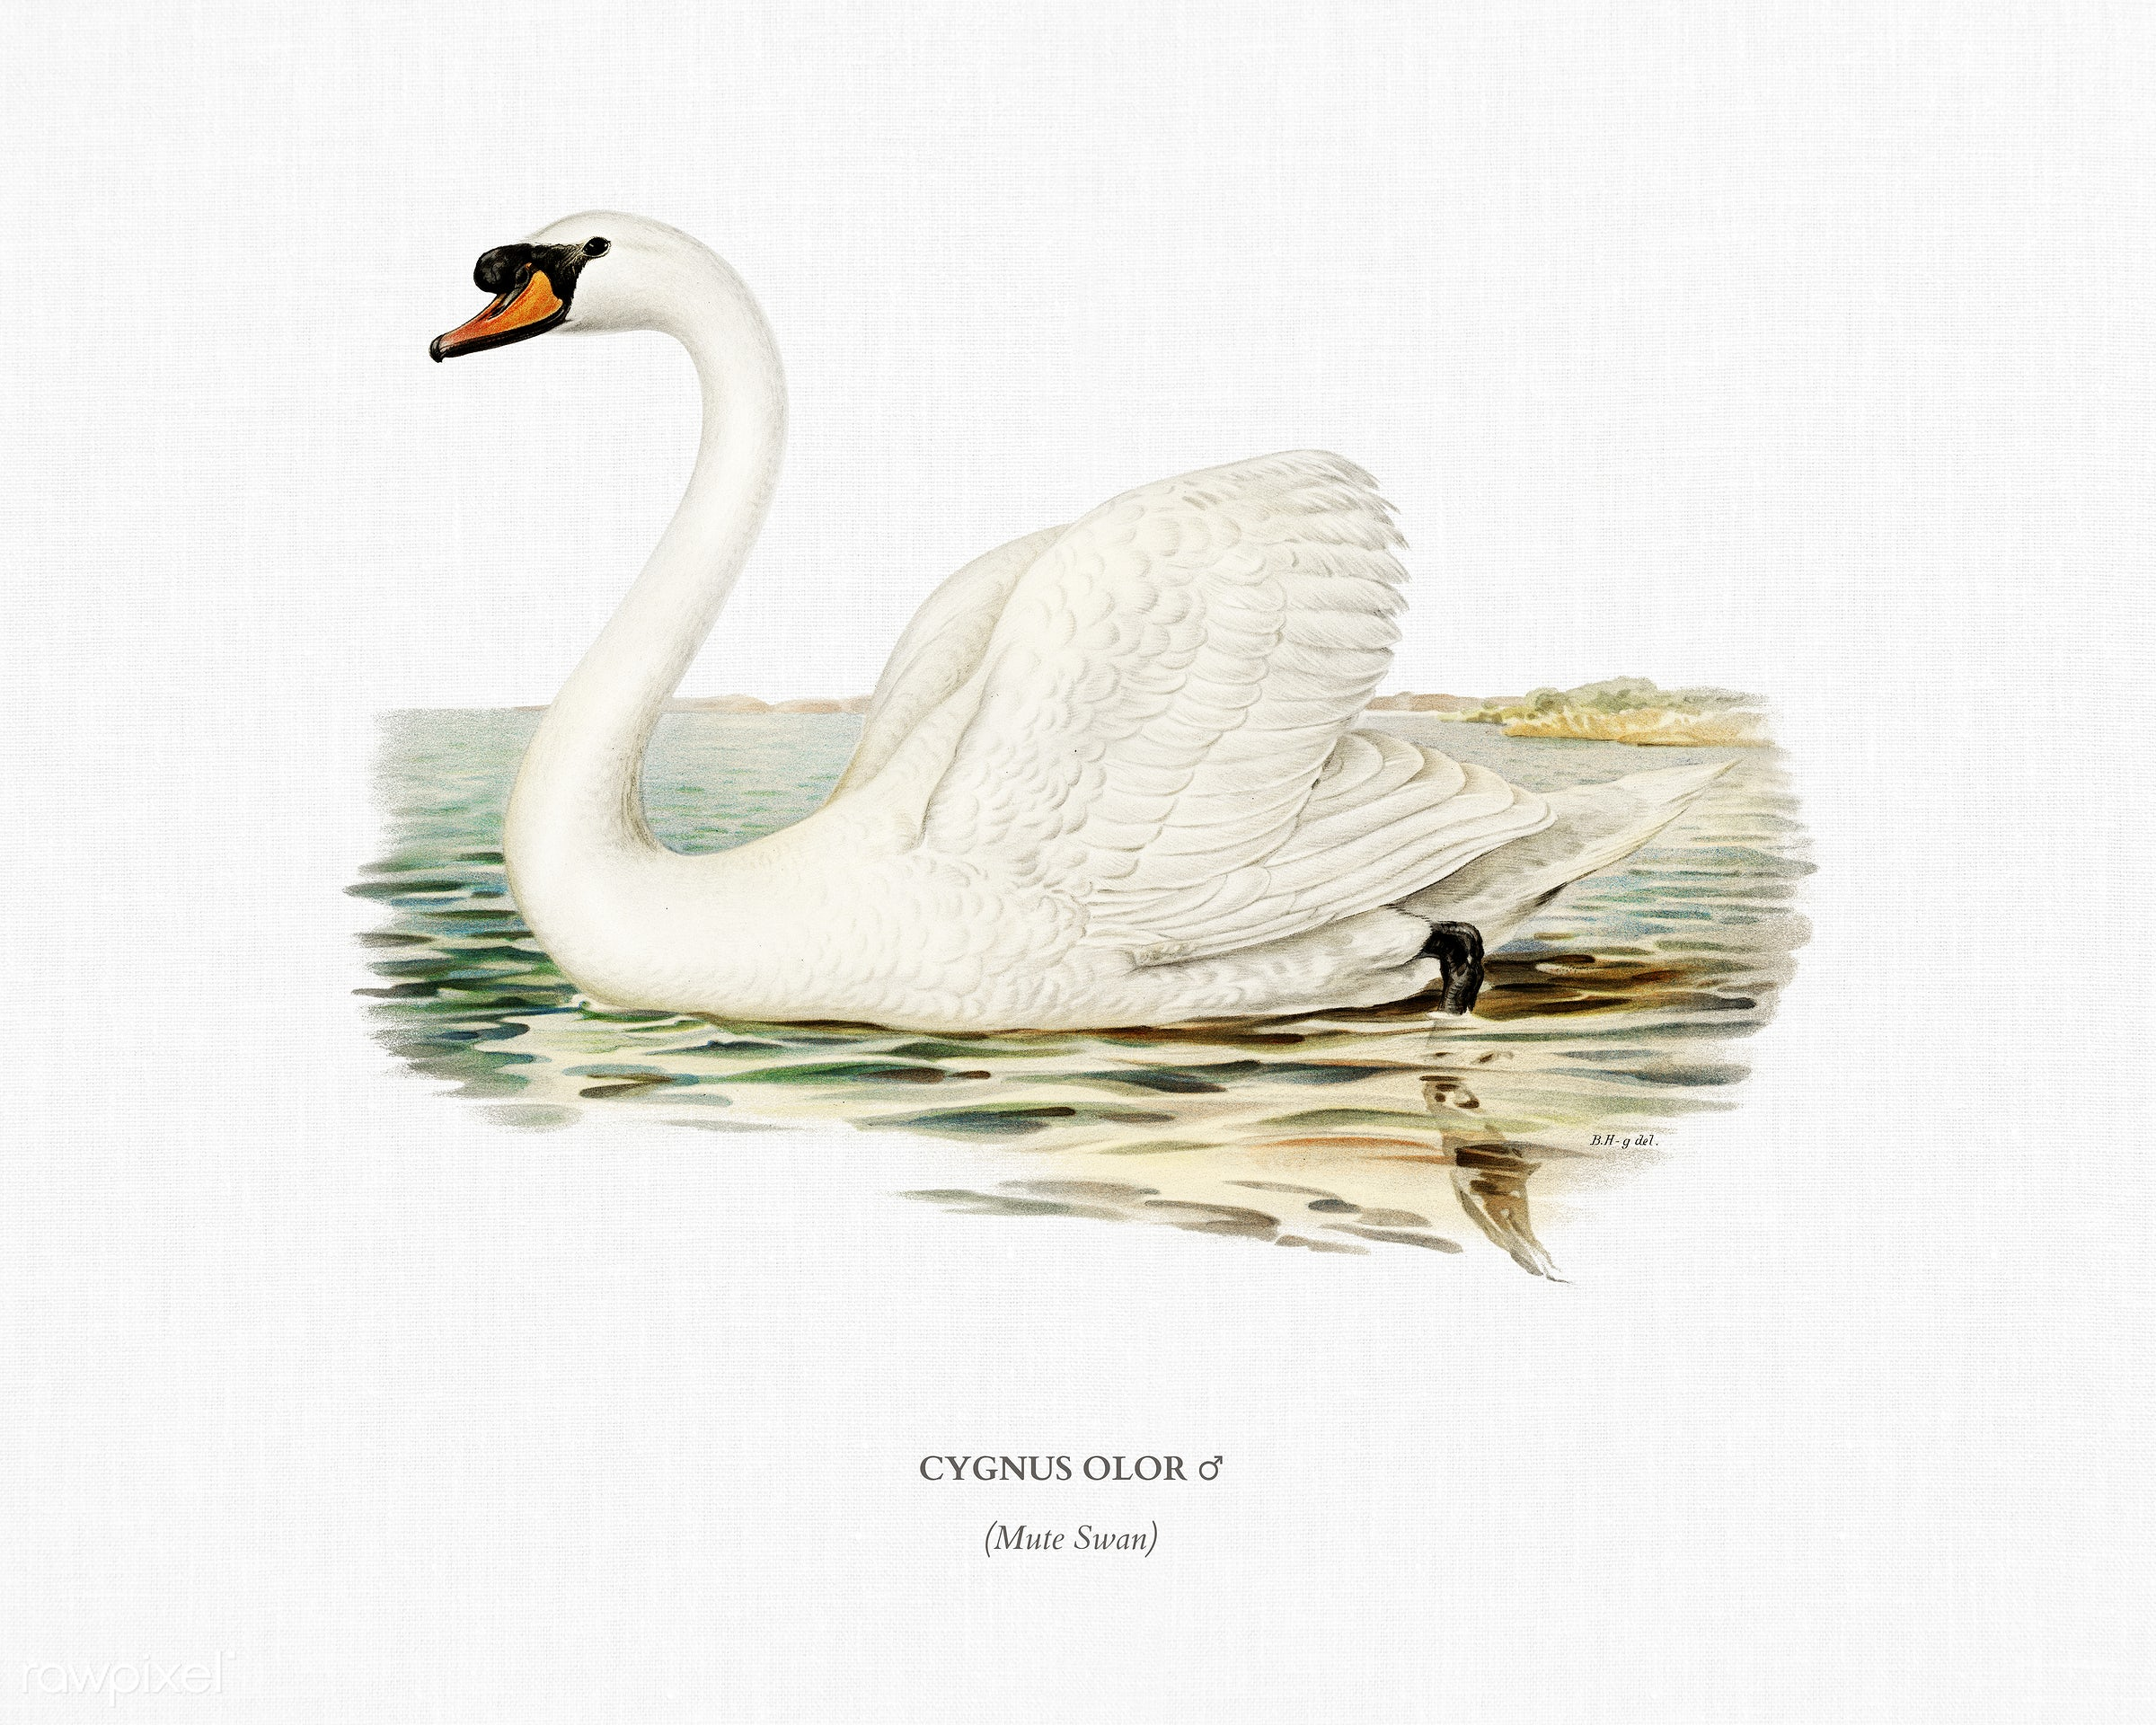 Mute Swan male (Cygnus olor) illustrated by the von Wright brothers. Digitally enhanced from our own 1929 folio version of...